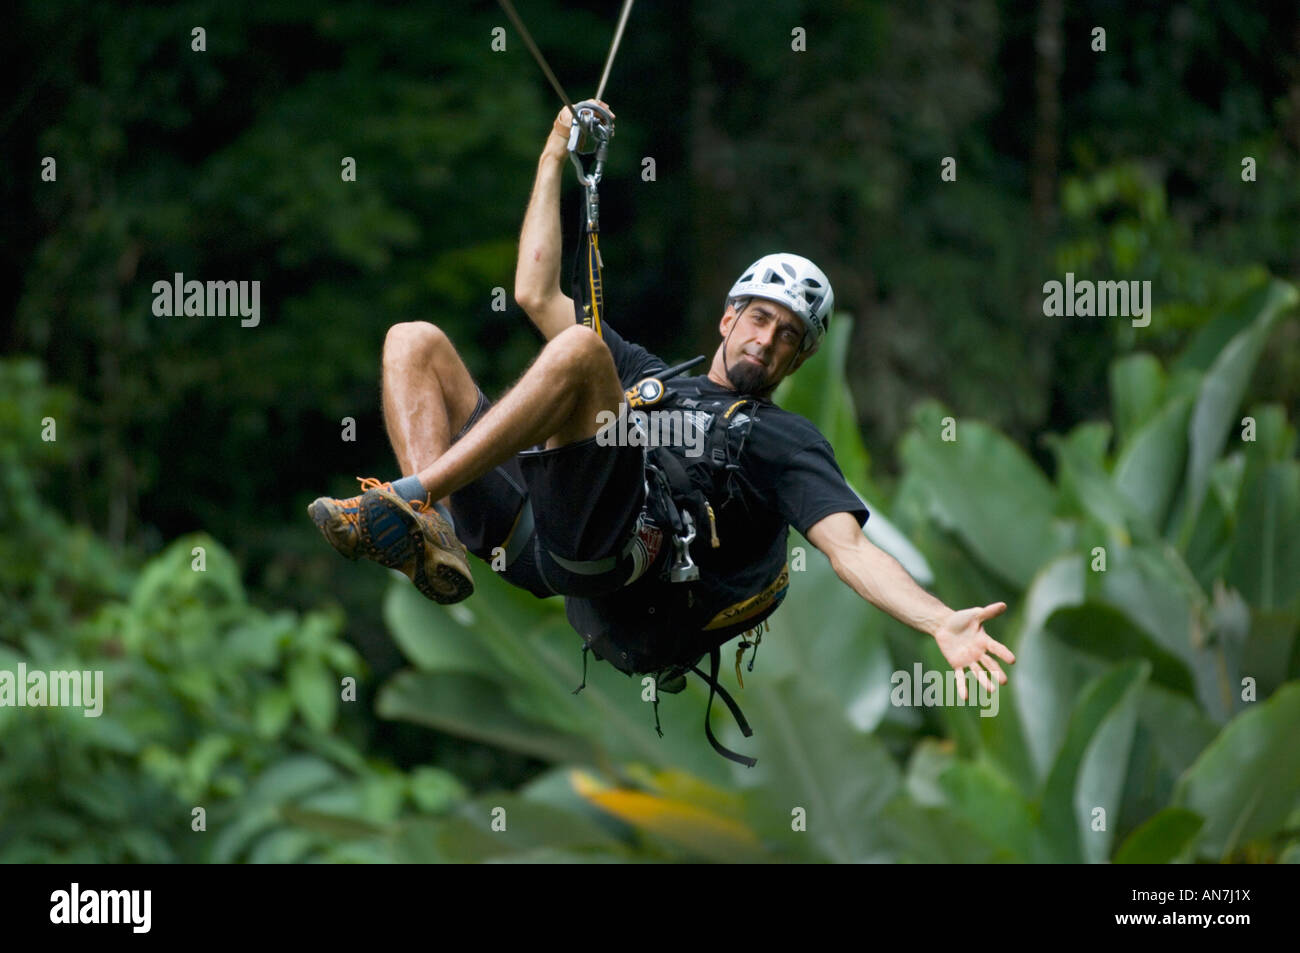 Man on zipline,  Aventuras del Sarapiqui, Costa Rica - Stock Image